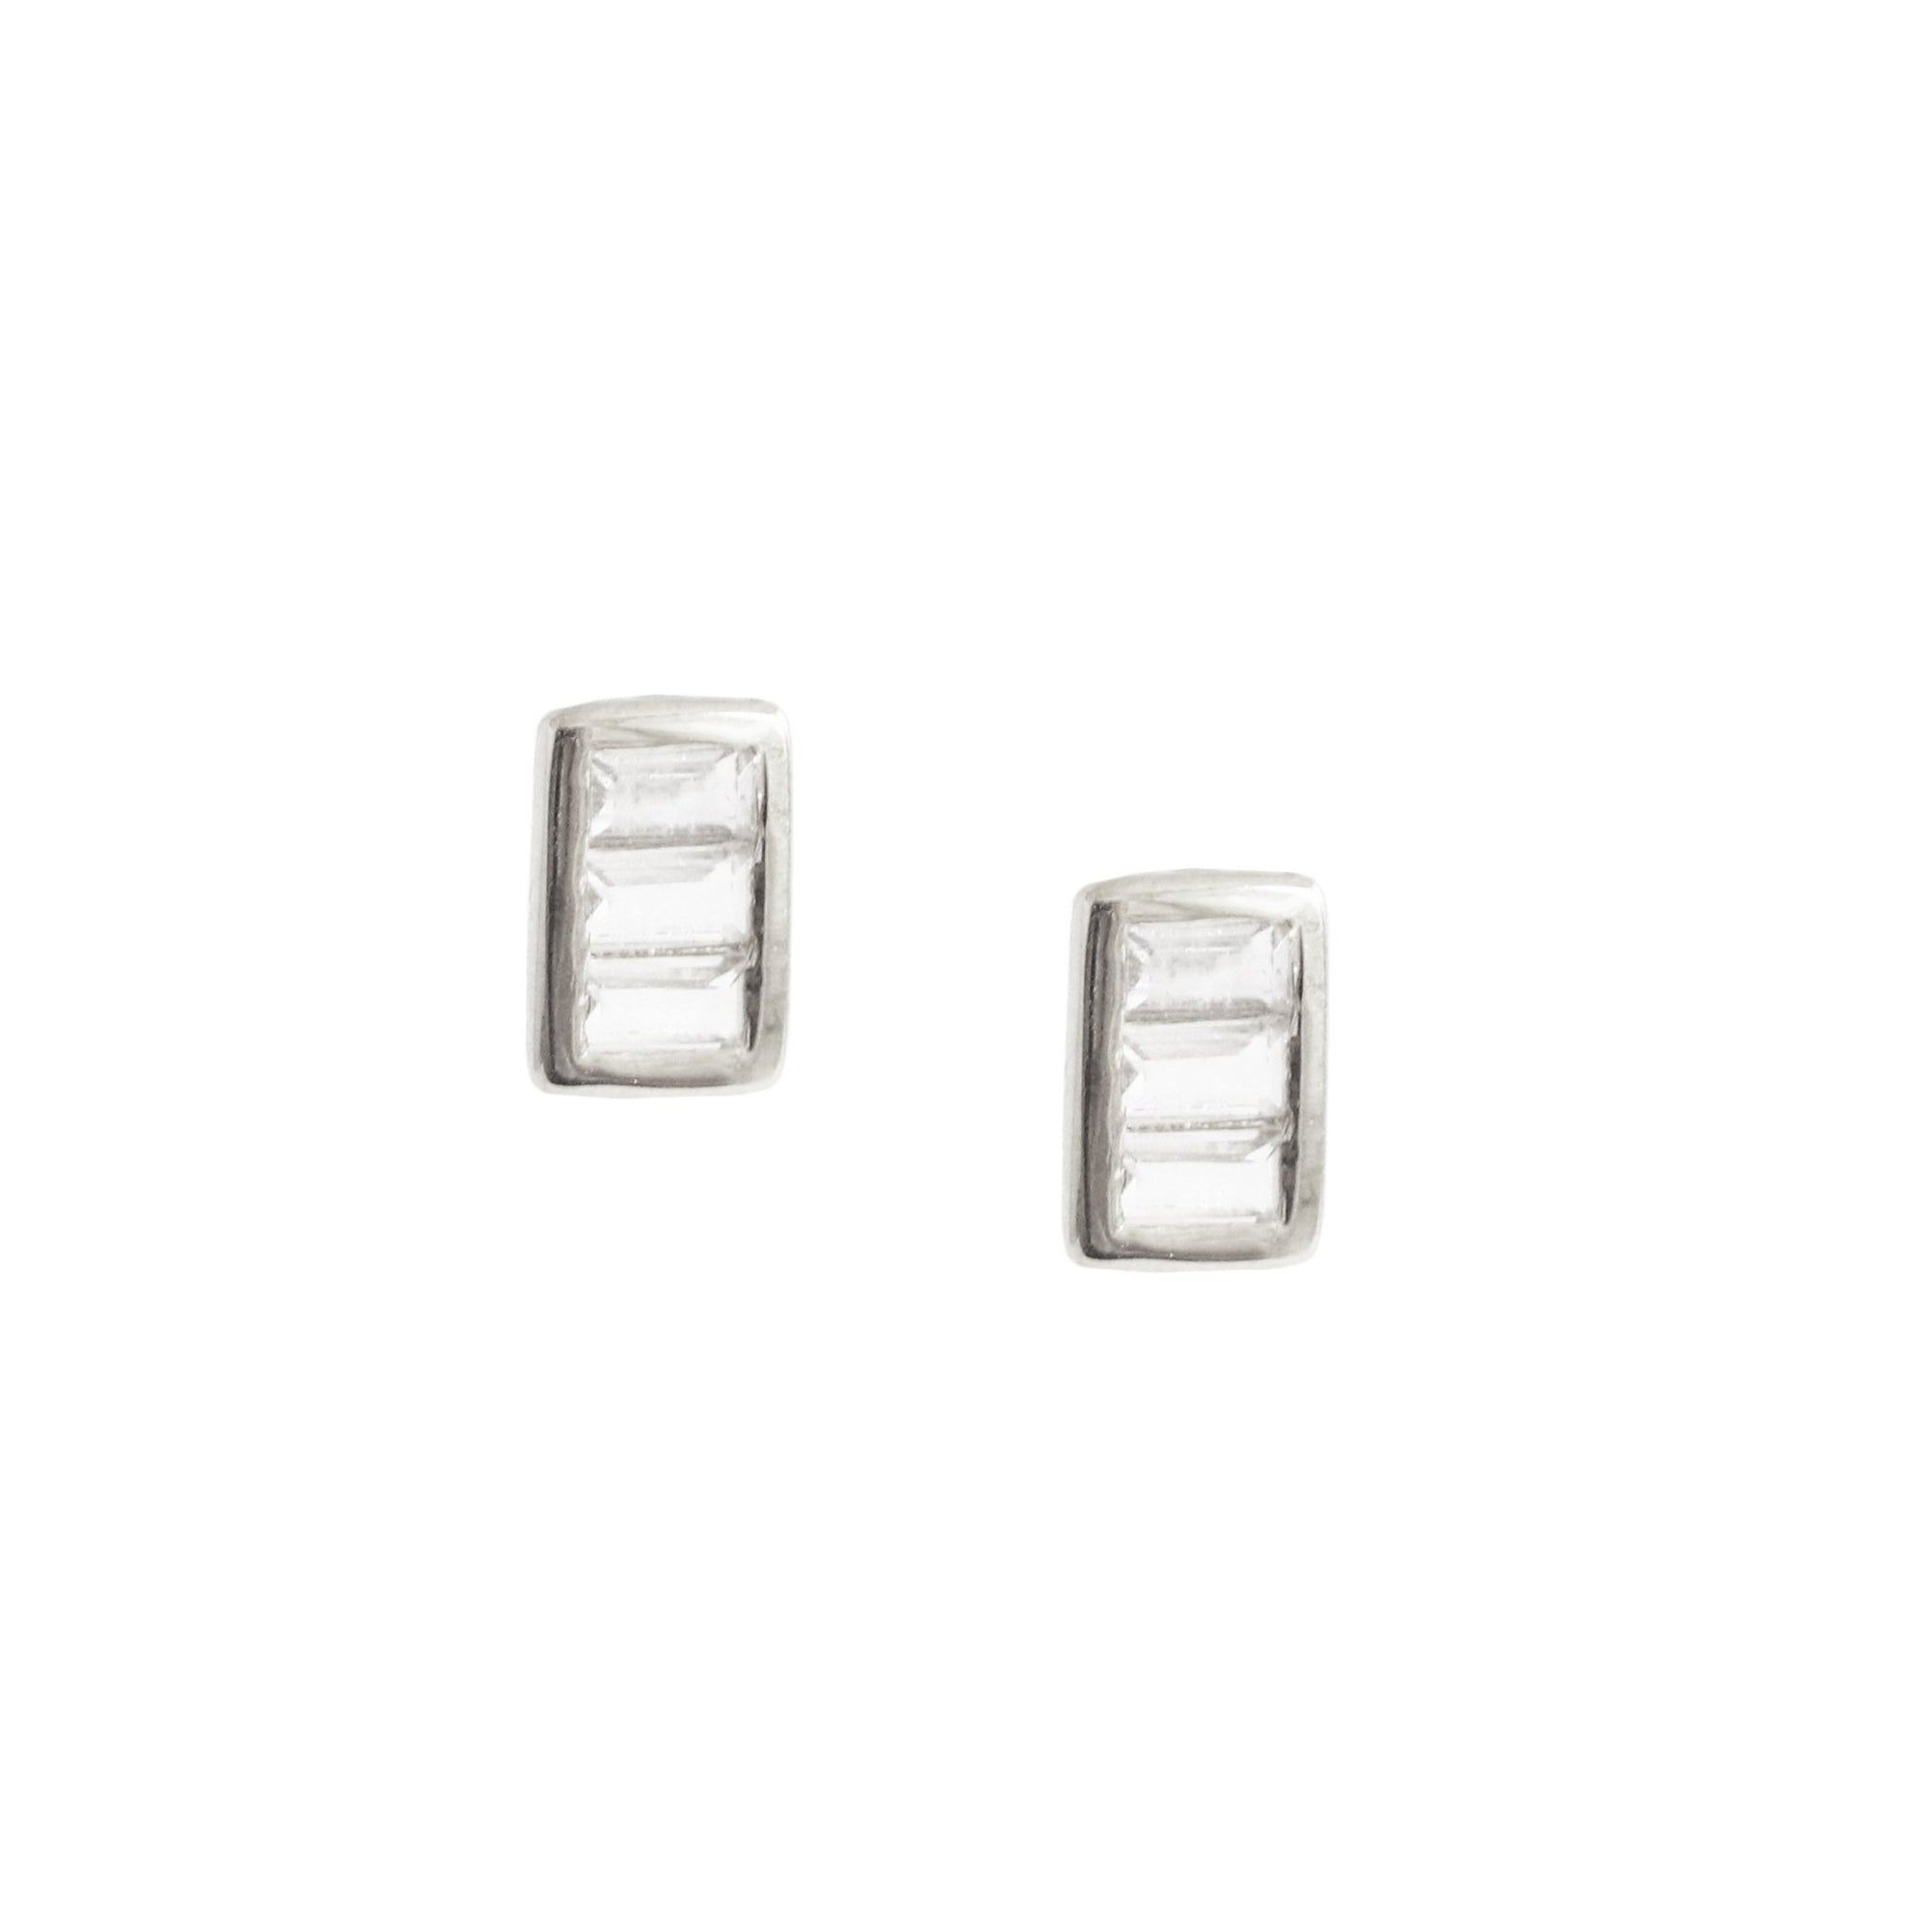 Tiny Loyal Stacked Studs - White Topaz & Silver - SO PRETTY CARA COTTER